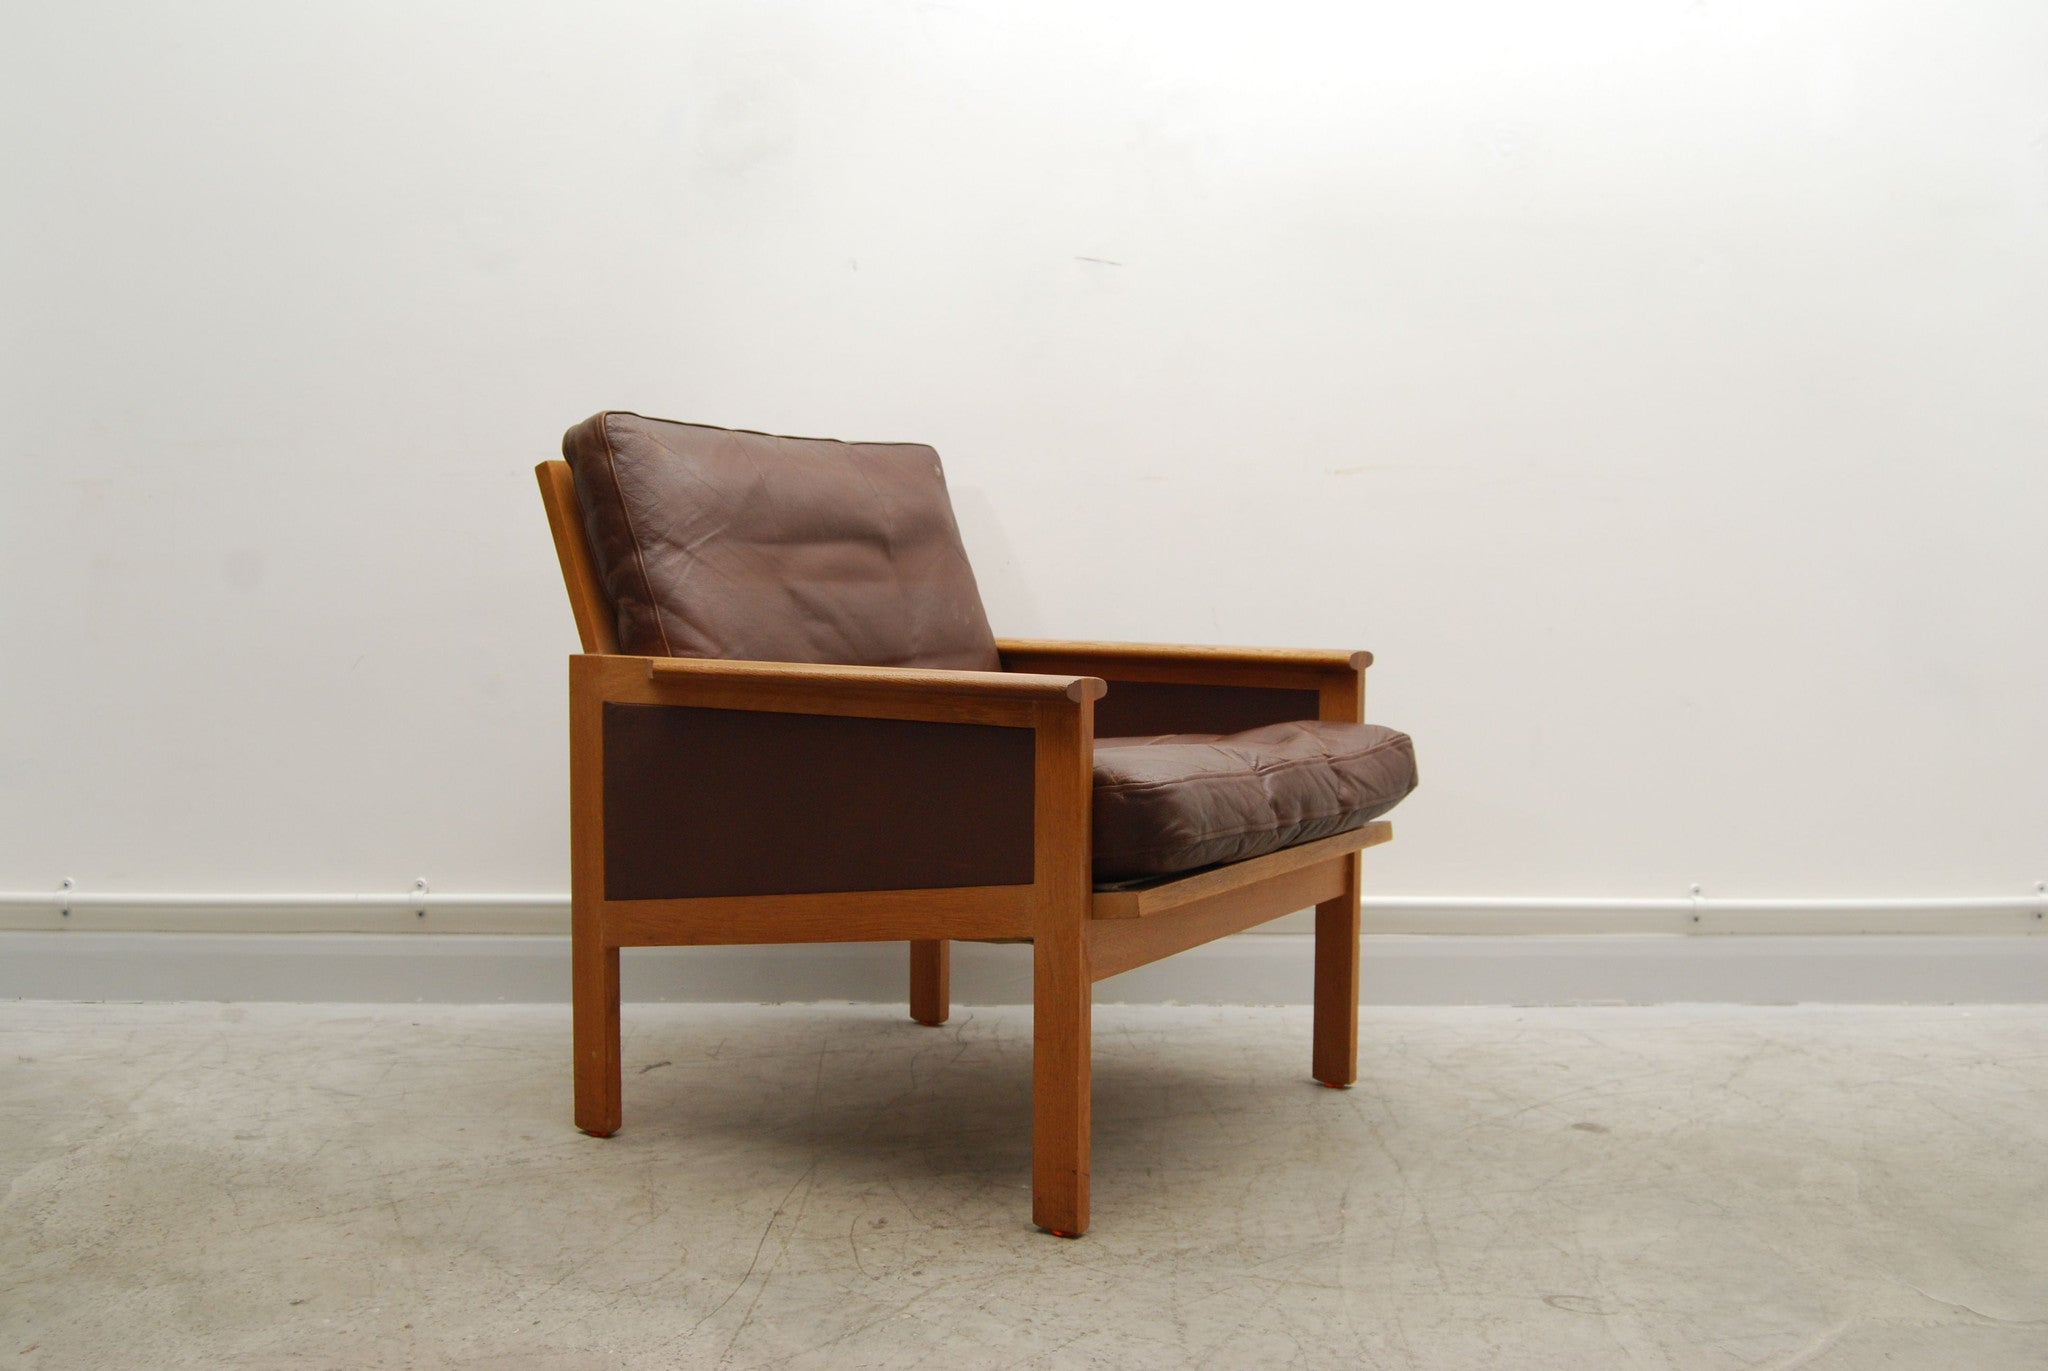 Oak lounge chair by Illum WikkelsíŸ